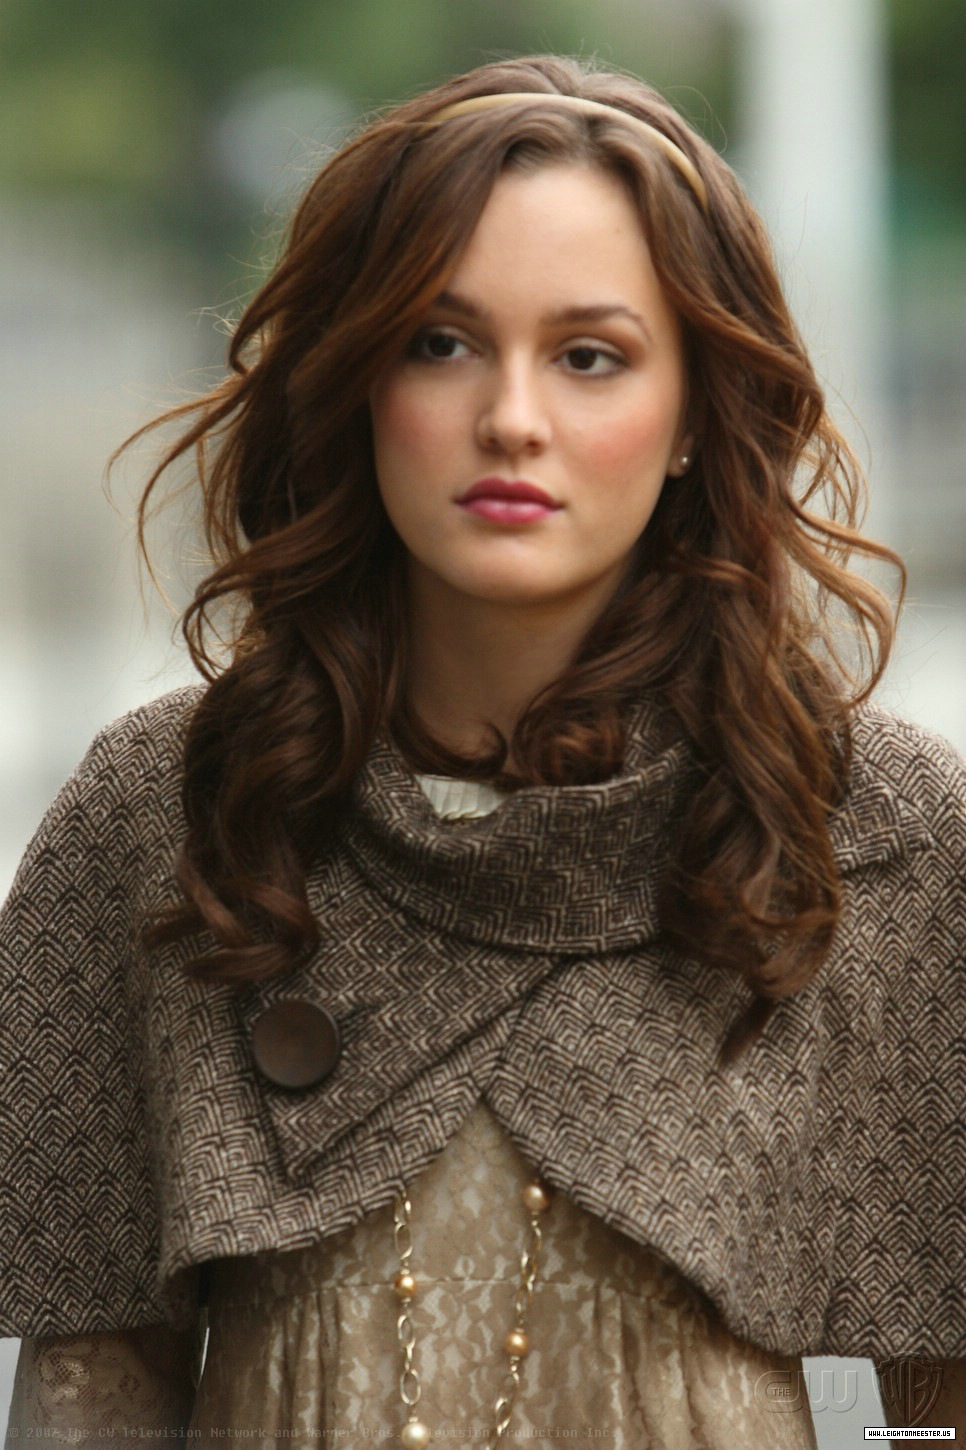 Digitalminx.com - Actresses - Leighton Meester - Page 2